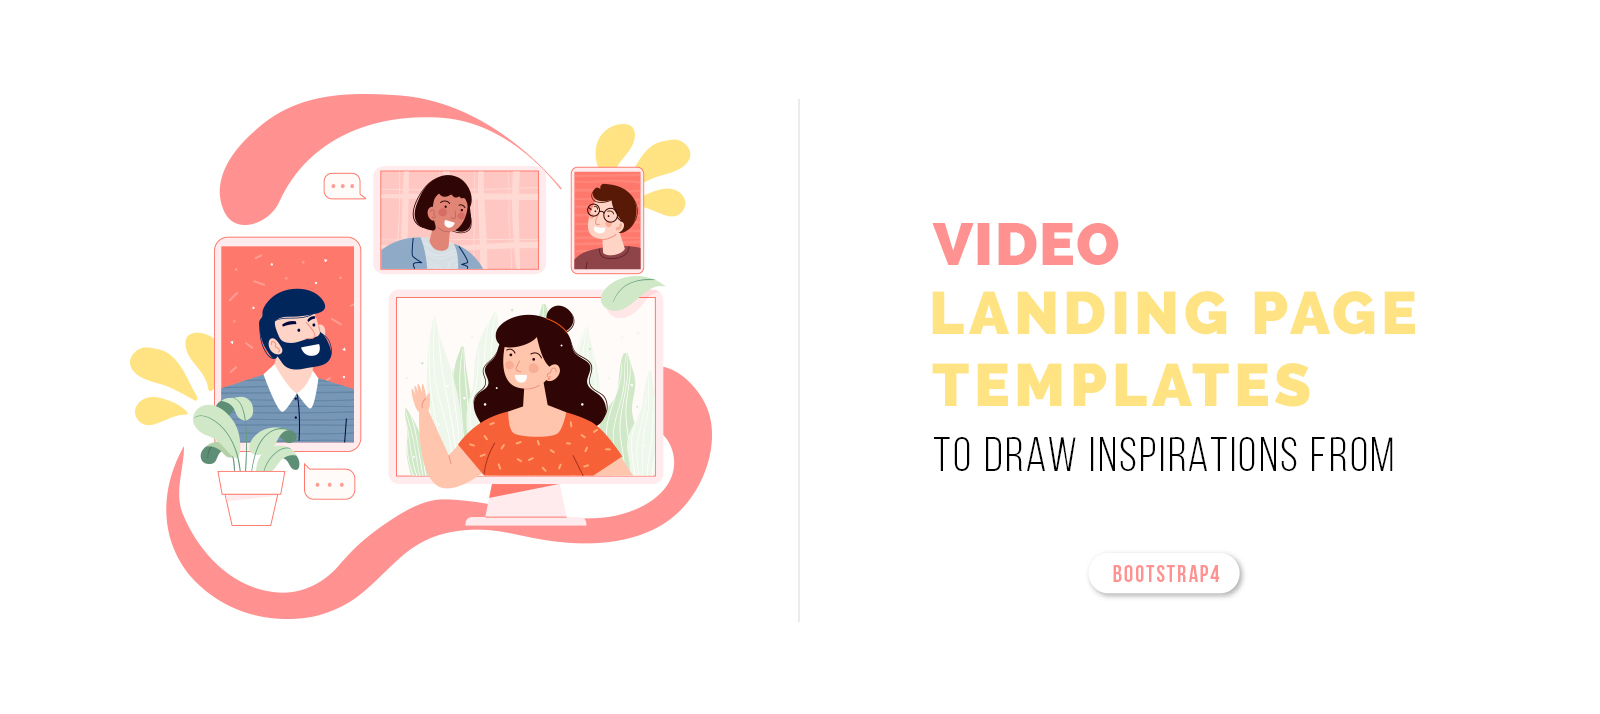 Bootstrap 4 Video Landing Page Templates to Draw Inspirations From